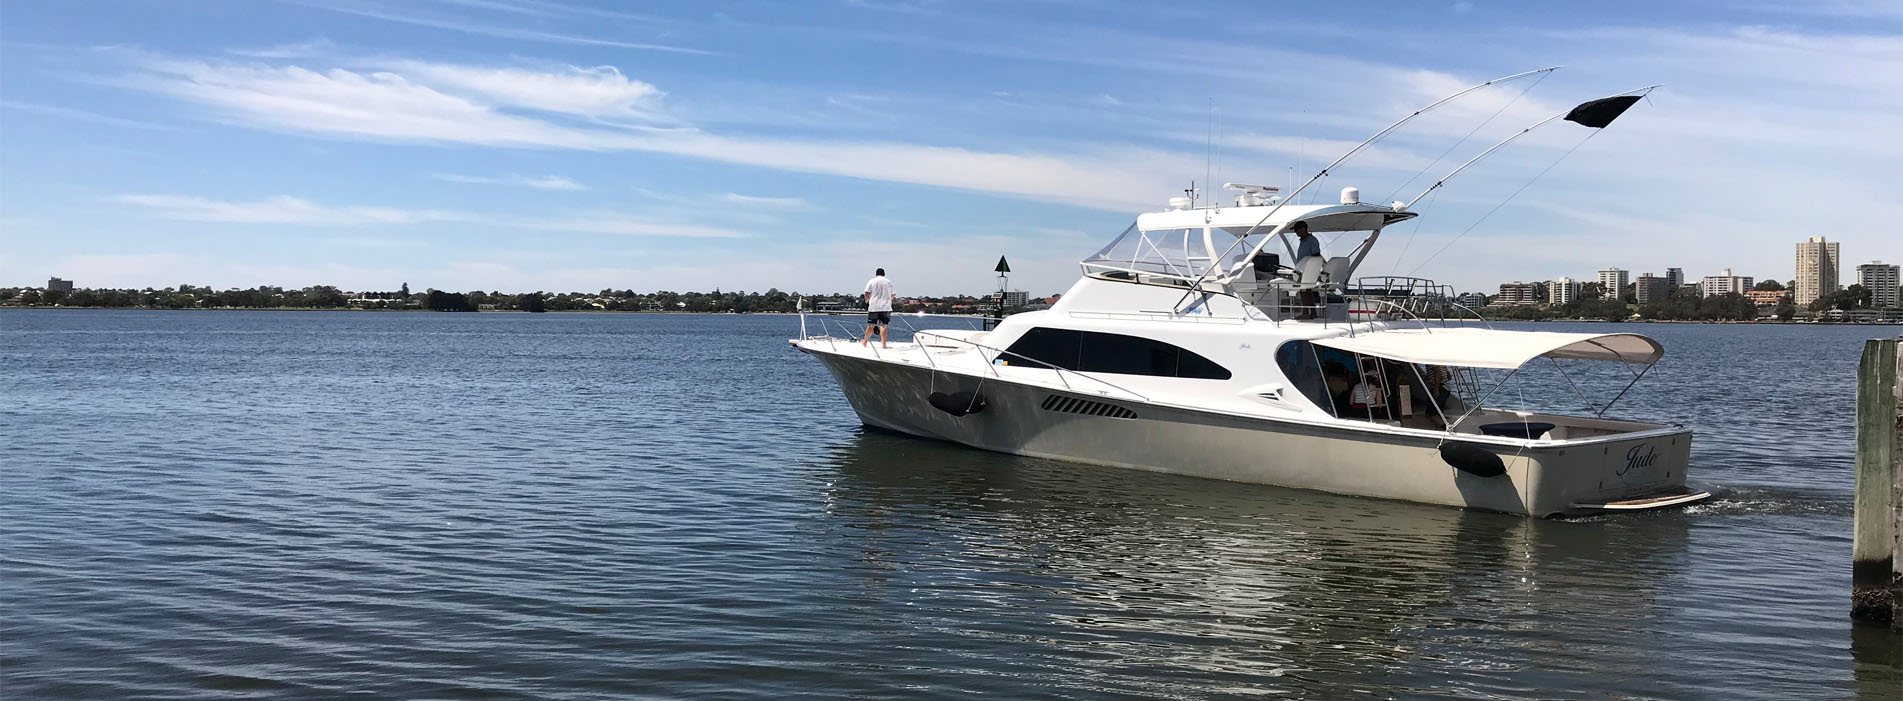 JUDE Boat charters perth luxury City